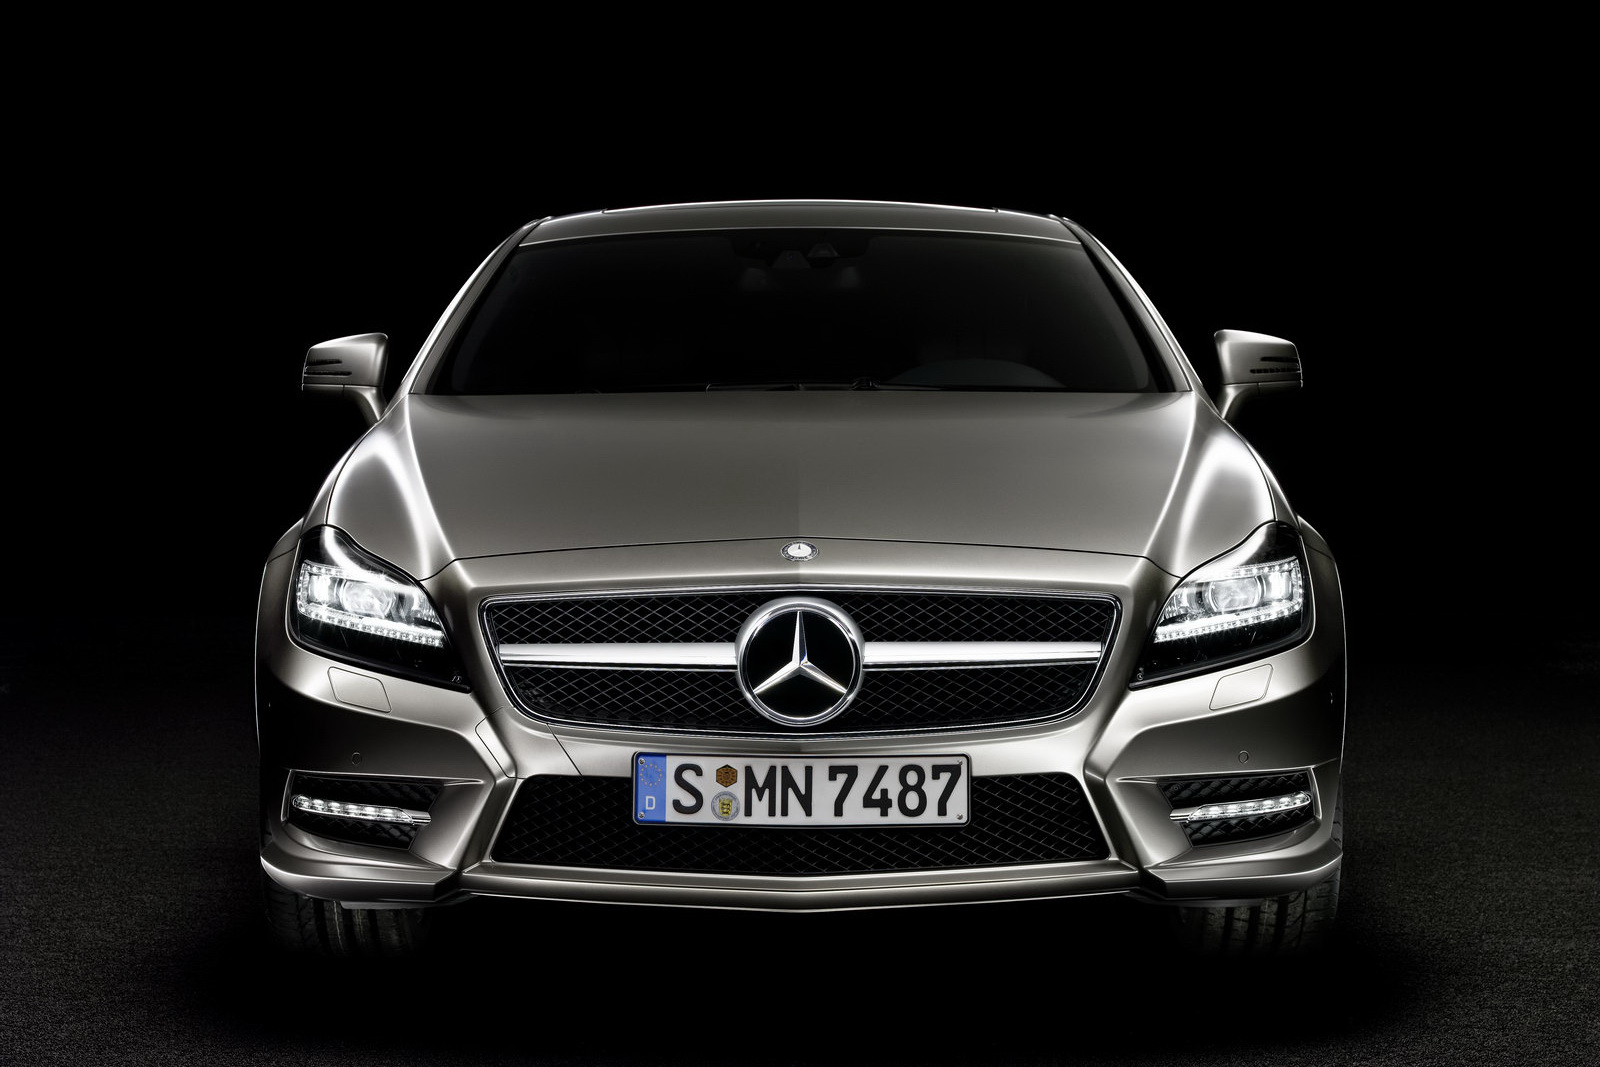 2011 mercedes benz cls350 photos price specifications for Mercedes benz 2011 price